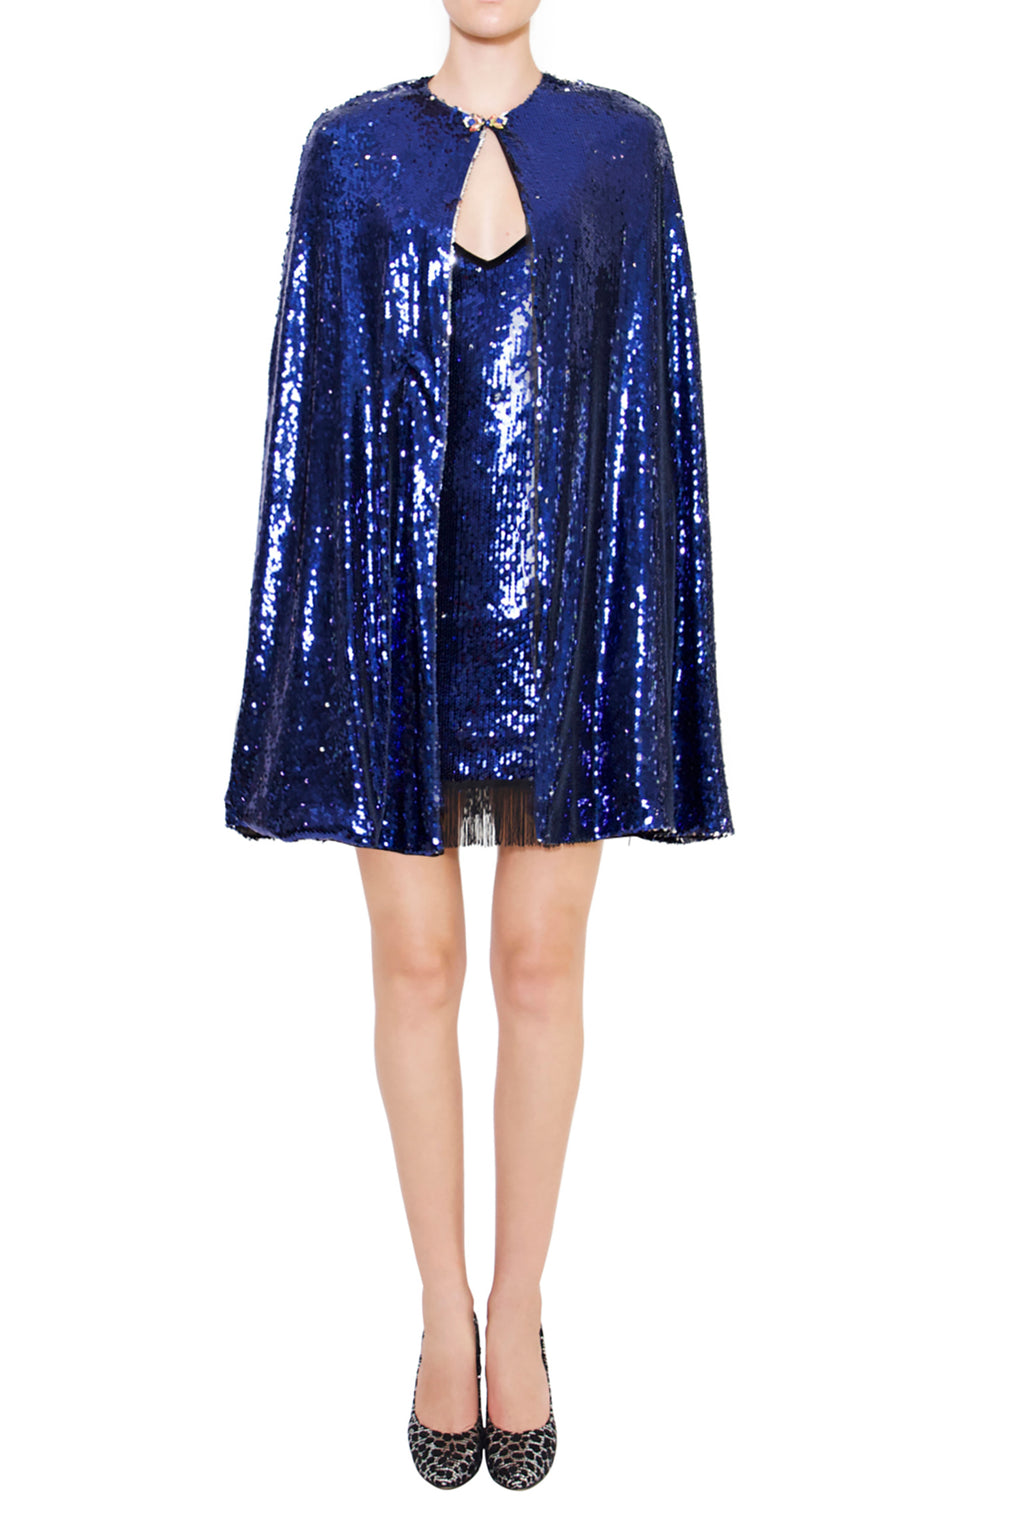 Ilona Rich Sequin Blue Cape